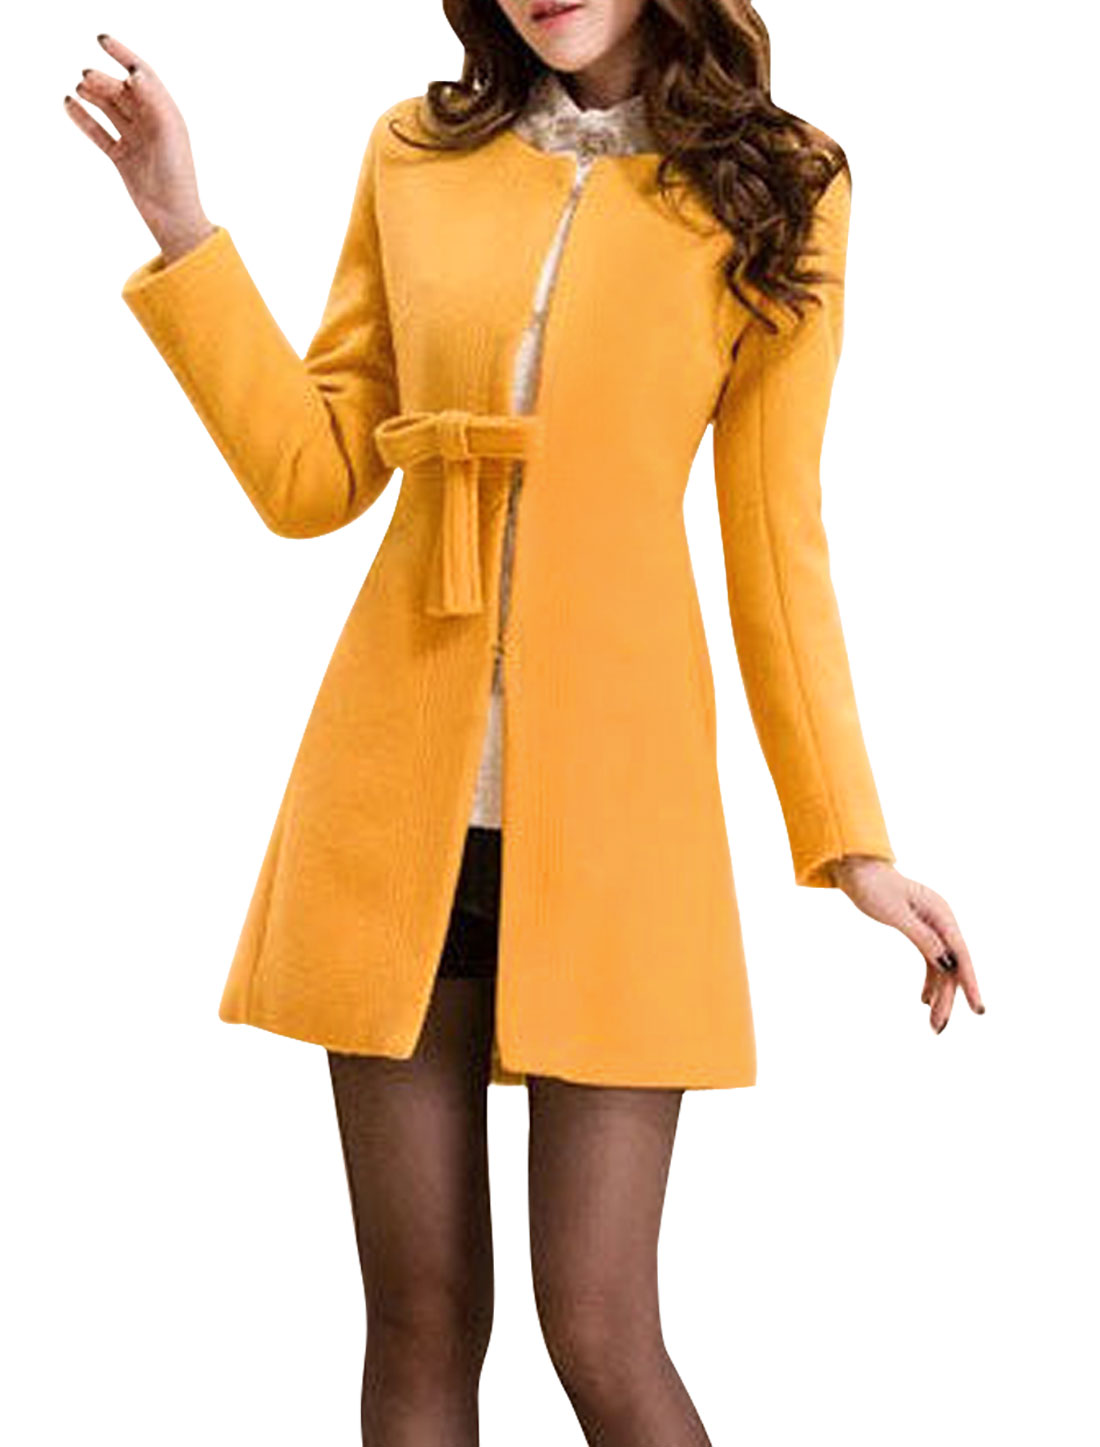 Pure Yellow Bowtie Decor Hook-Eye Closure Worsted Coat for Lady XS